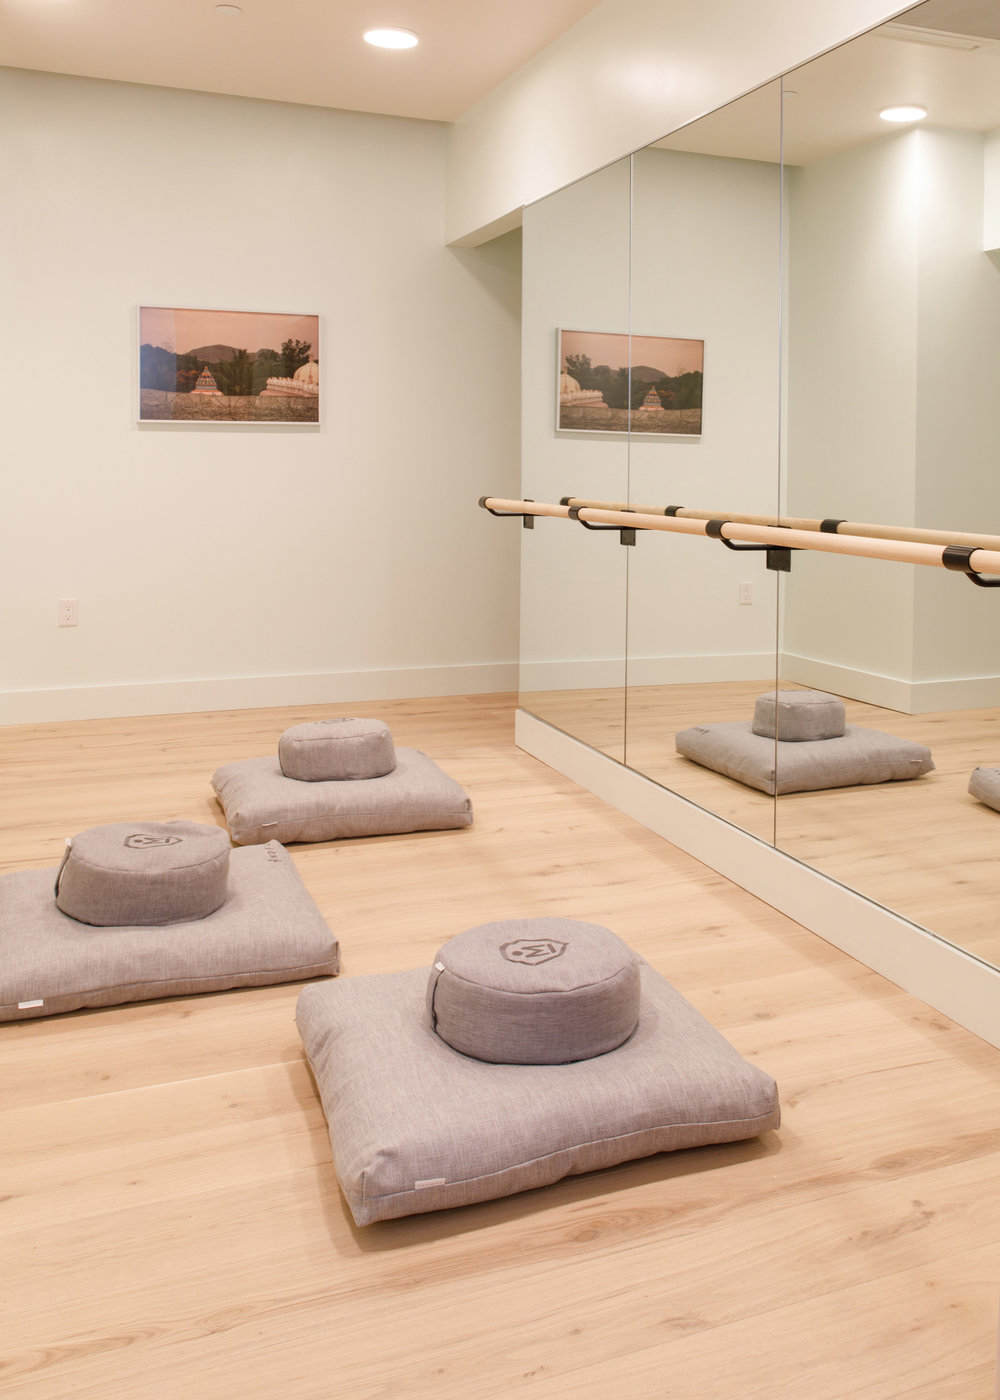 Yoga and barre studio with meditation pillows facing a mirror in The Wing Dumbo, Brooklyn. MEP Engineering designed by 2L Engineering.